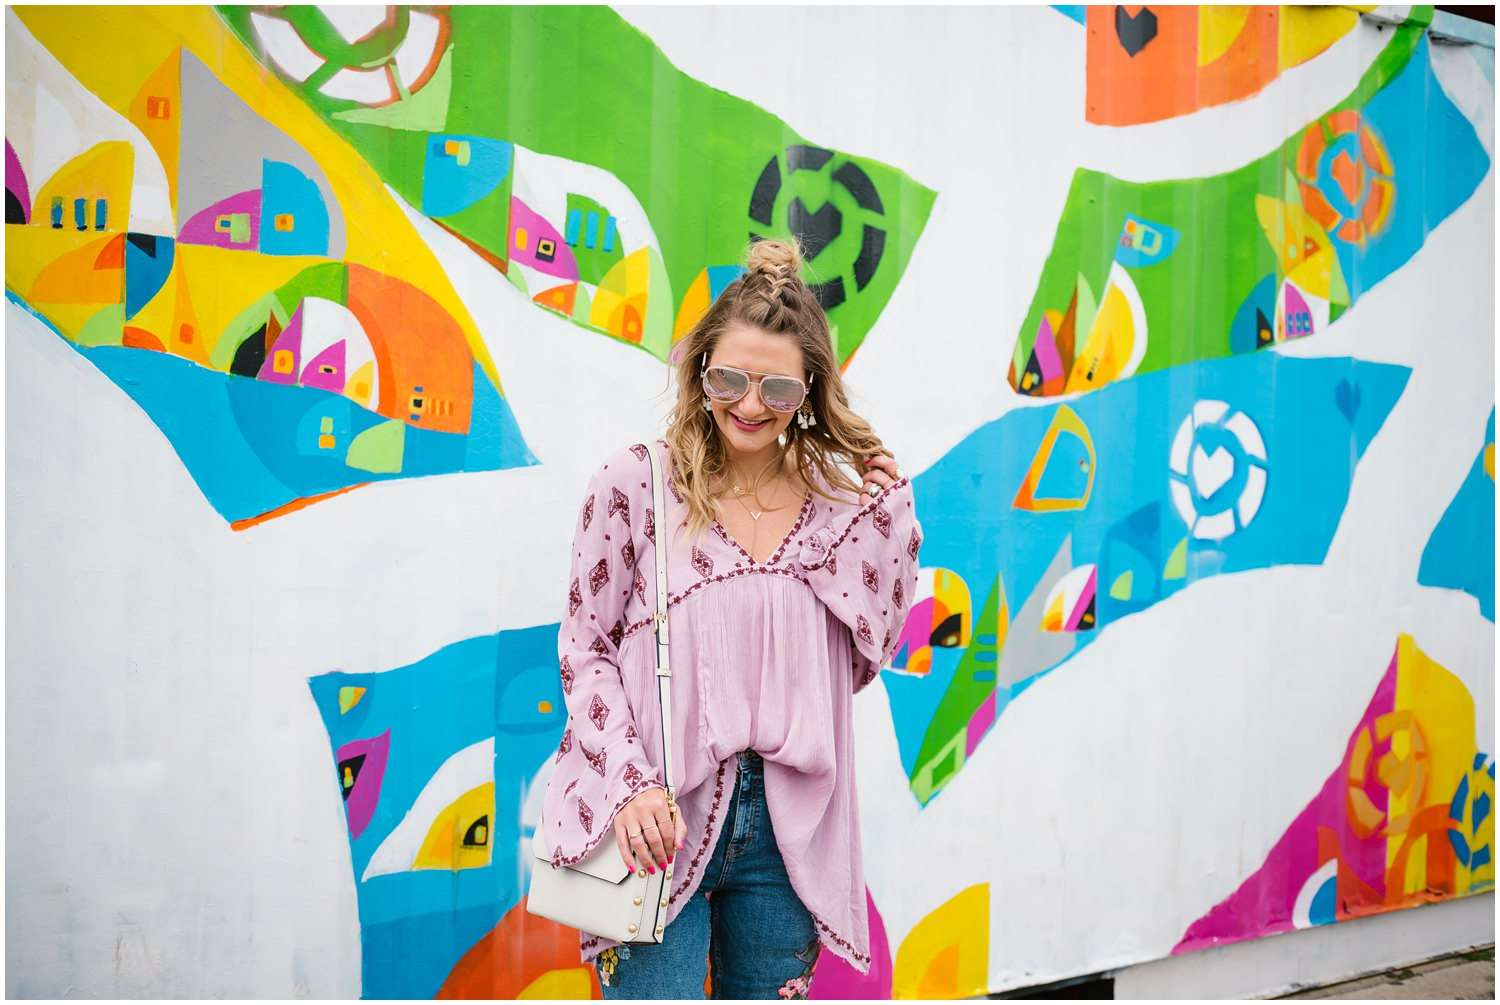 liketoknowit, liketoknow.it, reward style, rewardstyle, app, he(art) wall, heart wall, mural, colorful, chicago, wall, graffiti, justus roe, city, lolla, lollapalooza, festival, fashion, festival fashion, art wall, city tour, city tours, rewardstylehq, blogger, music festival, music, influencer, instagram, photographer, photography, lifestyle